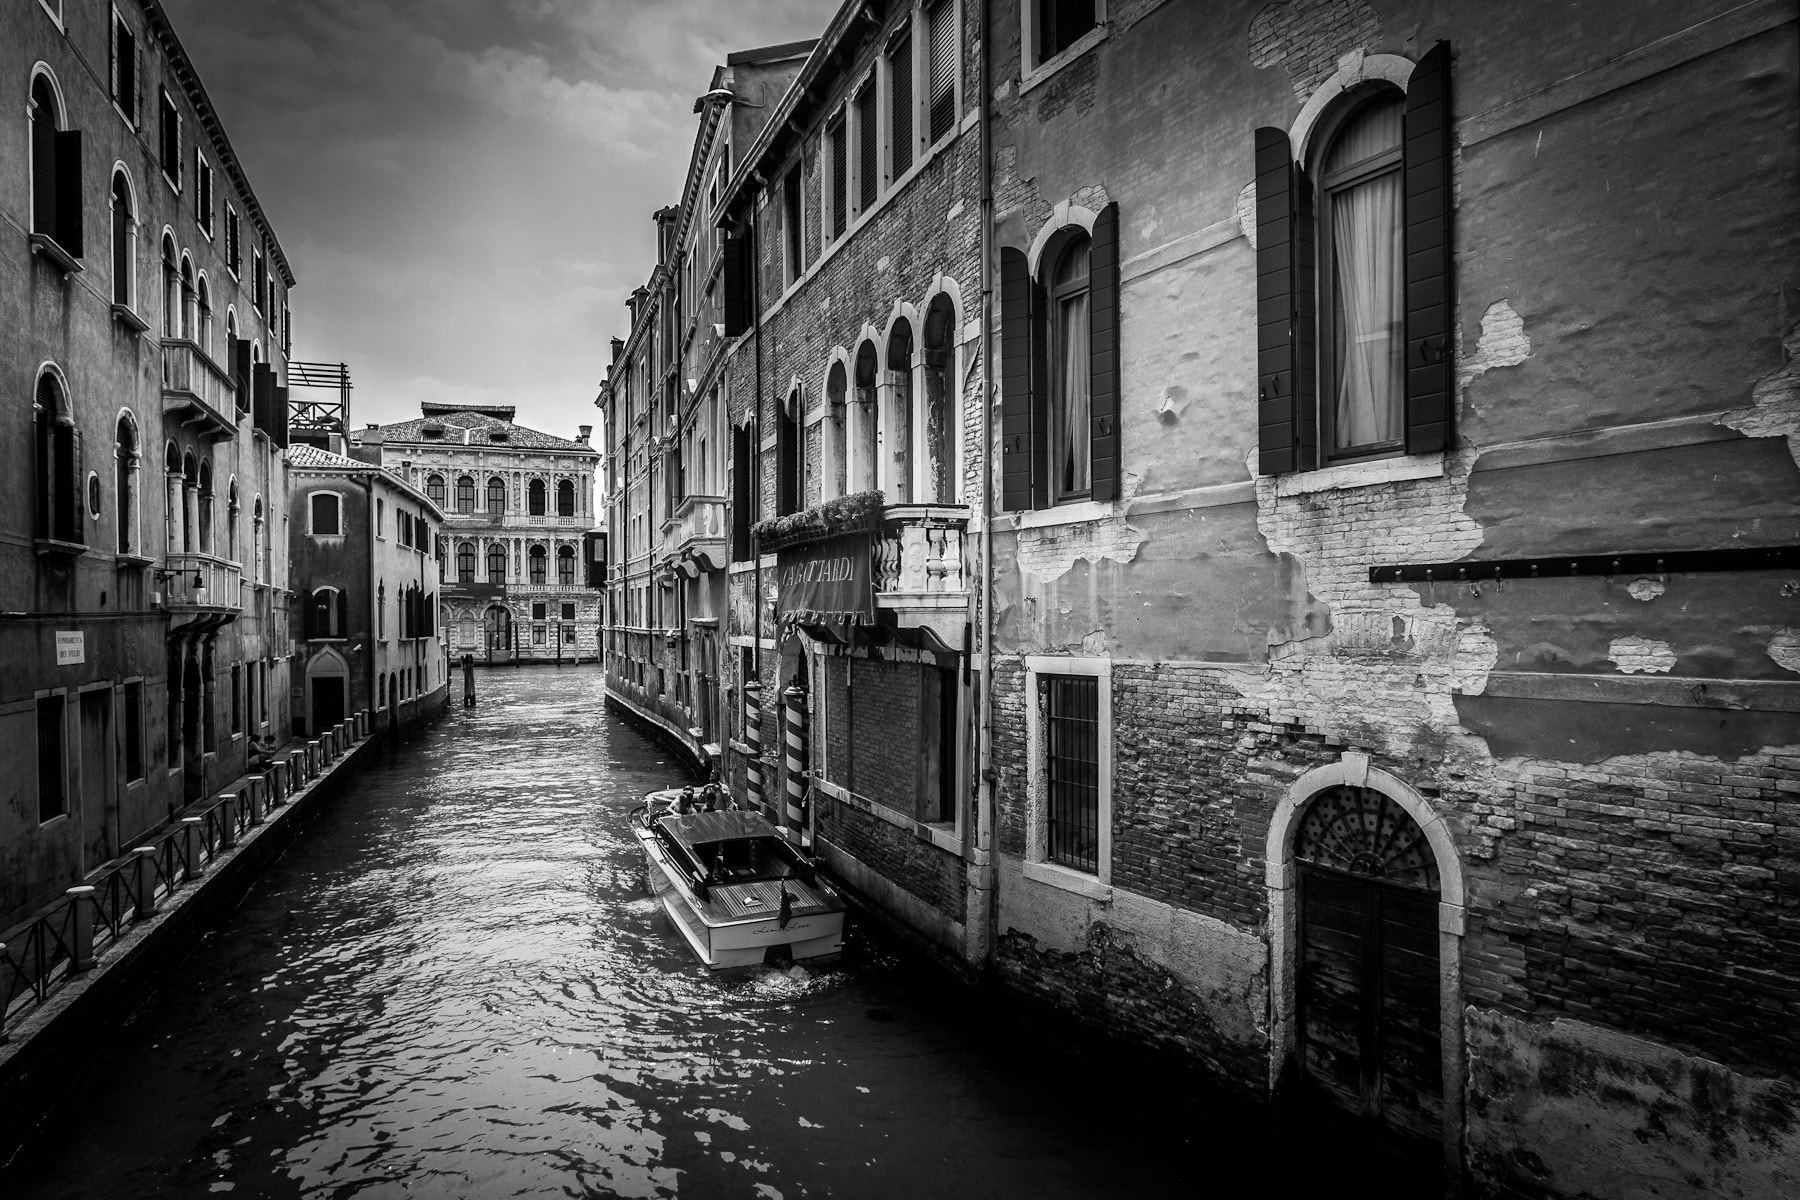 Photograph Venise's streets Black & White by Ramelli Serge on 500px